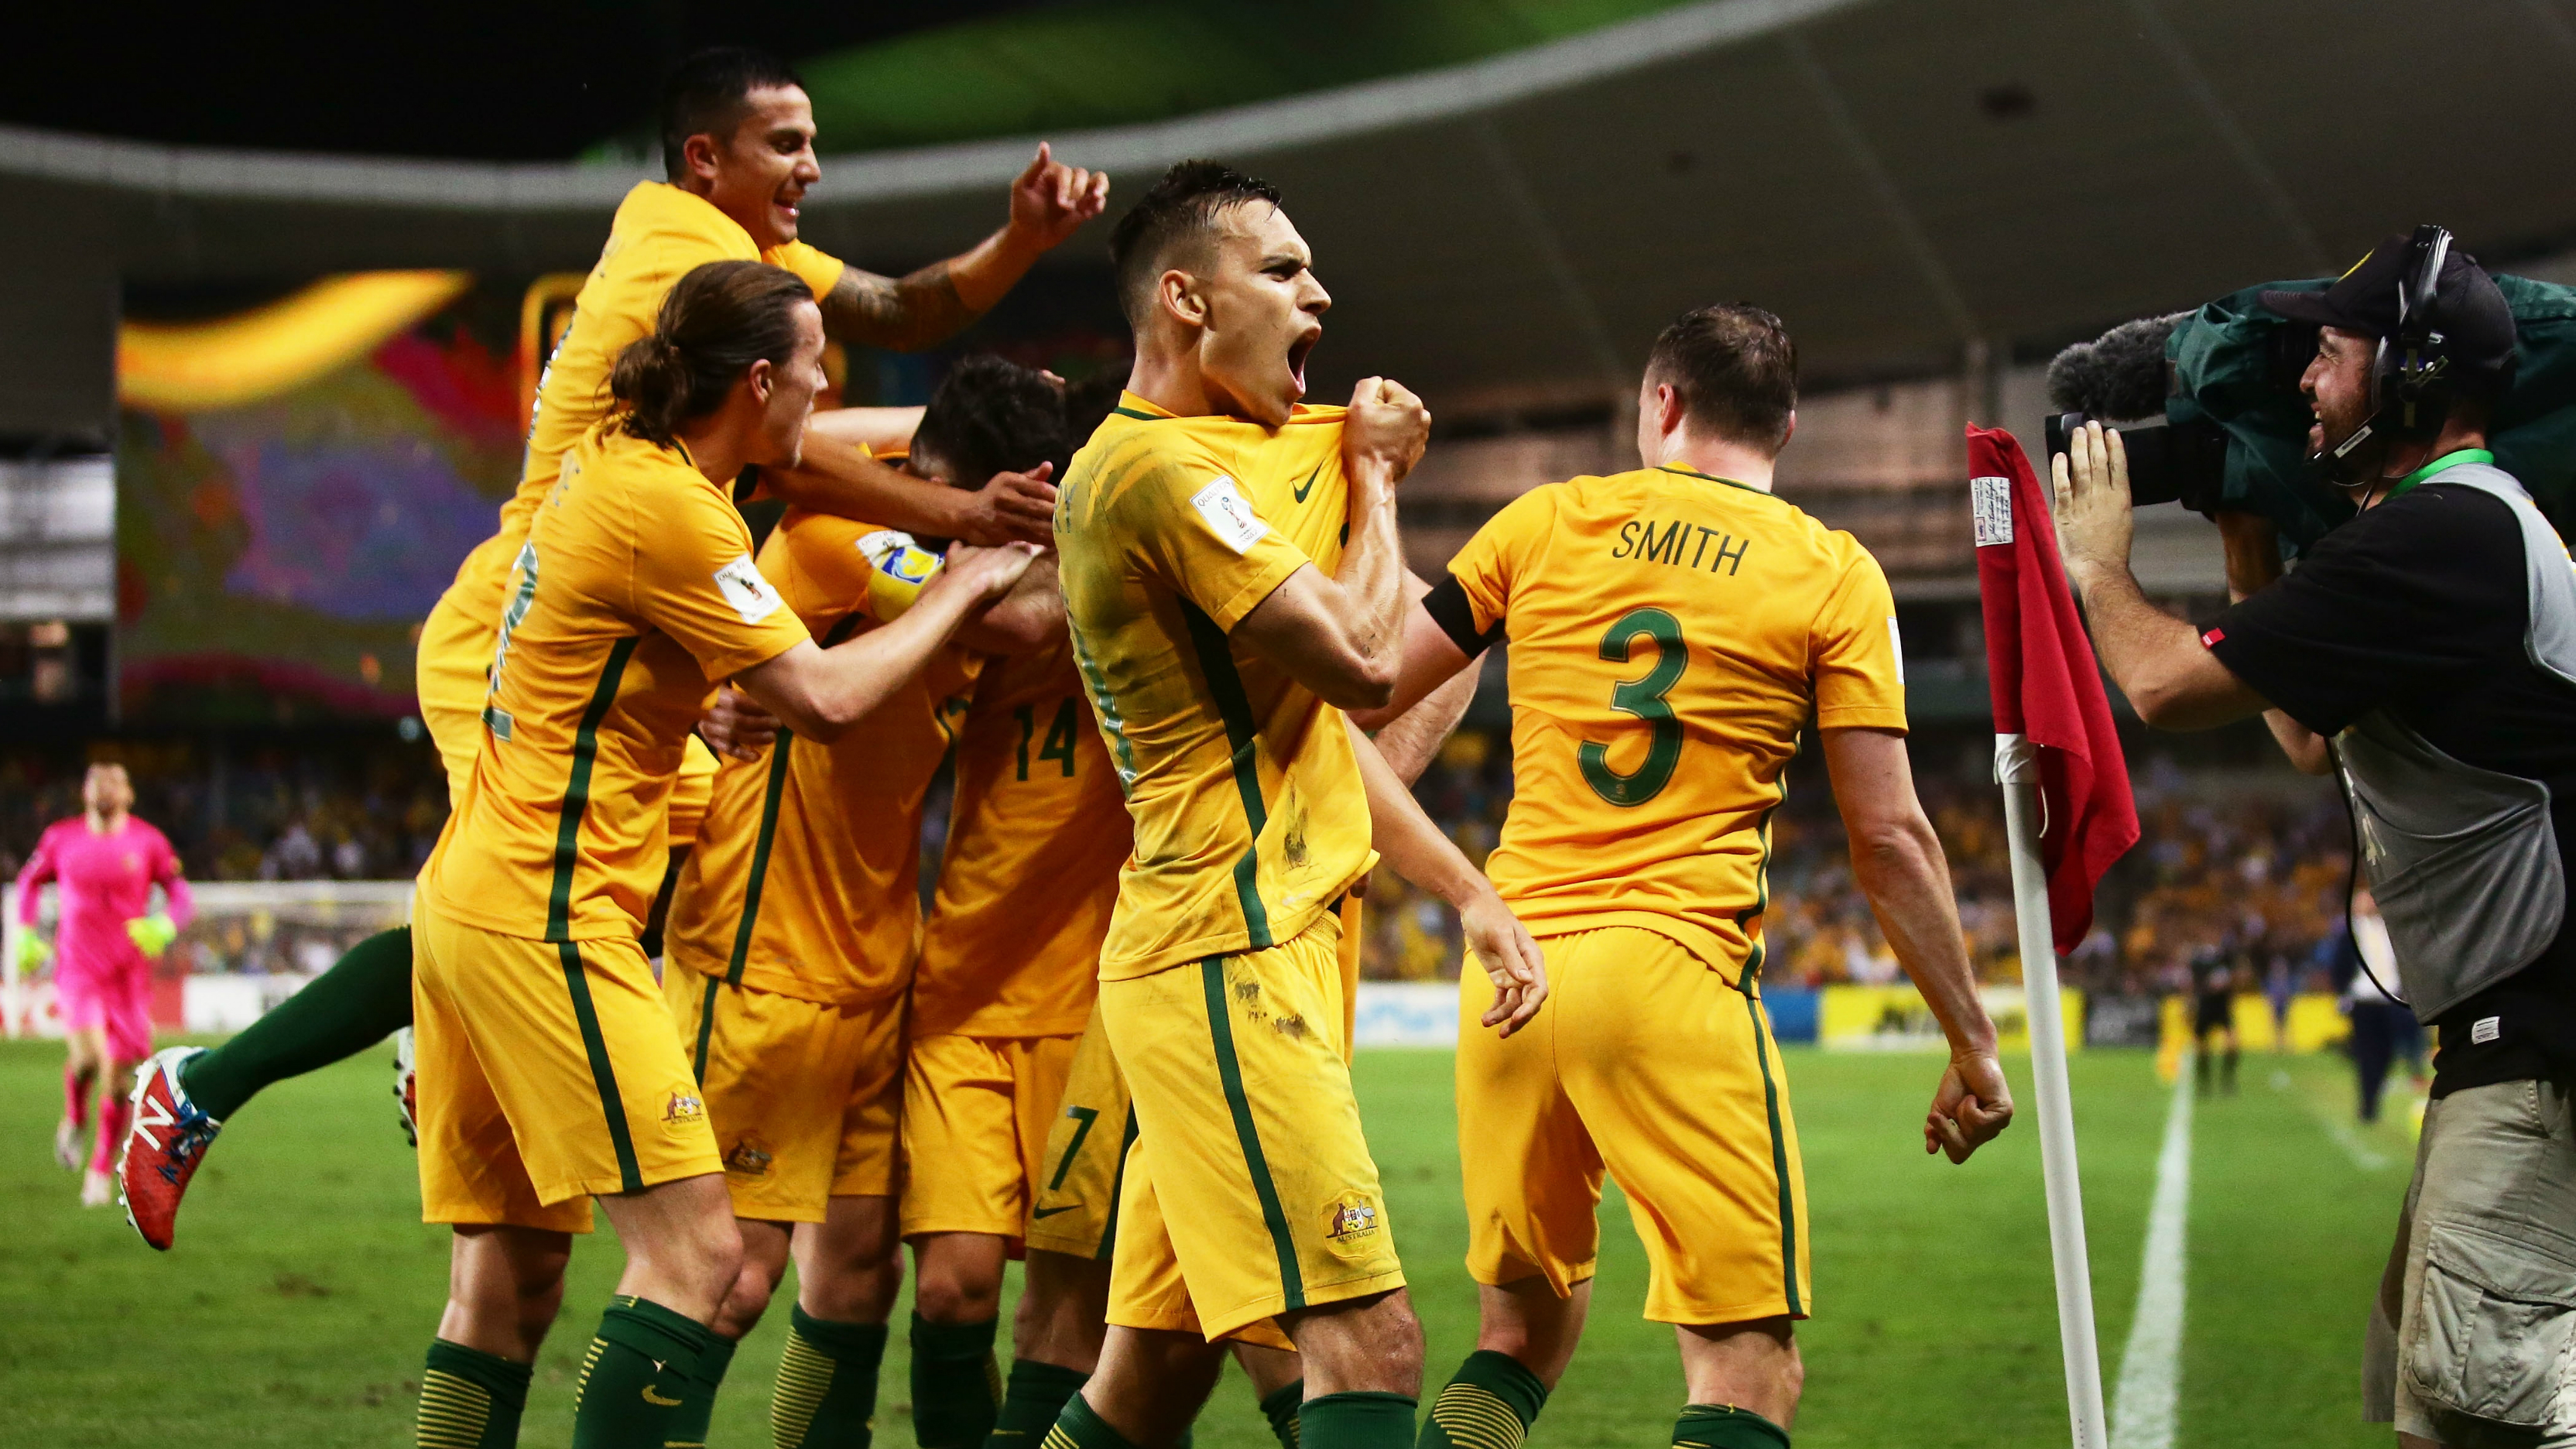 The Caltex Socceroos will be chasing a big win against Thailand to help them qualify for next year's FIFA World Cup.